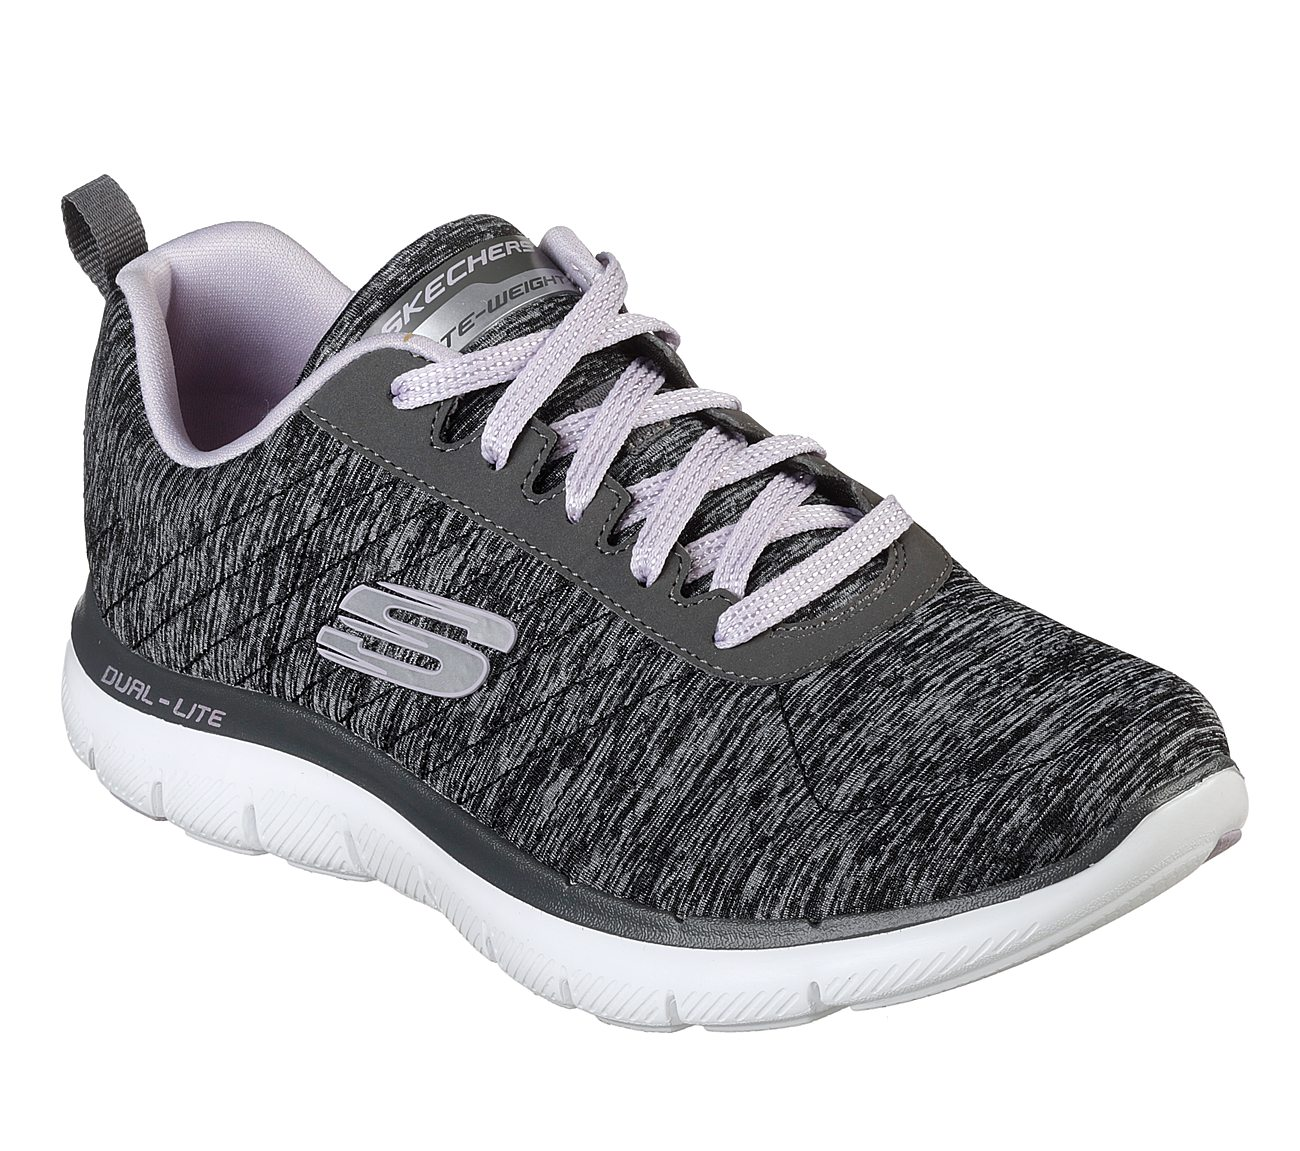 67c7cf4ffb7be Buy SKECHERS Flex Appeal 2.0 SKECHERS Sport Shoes only £62.00